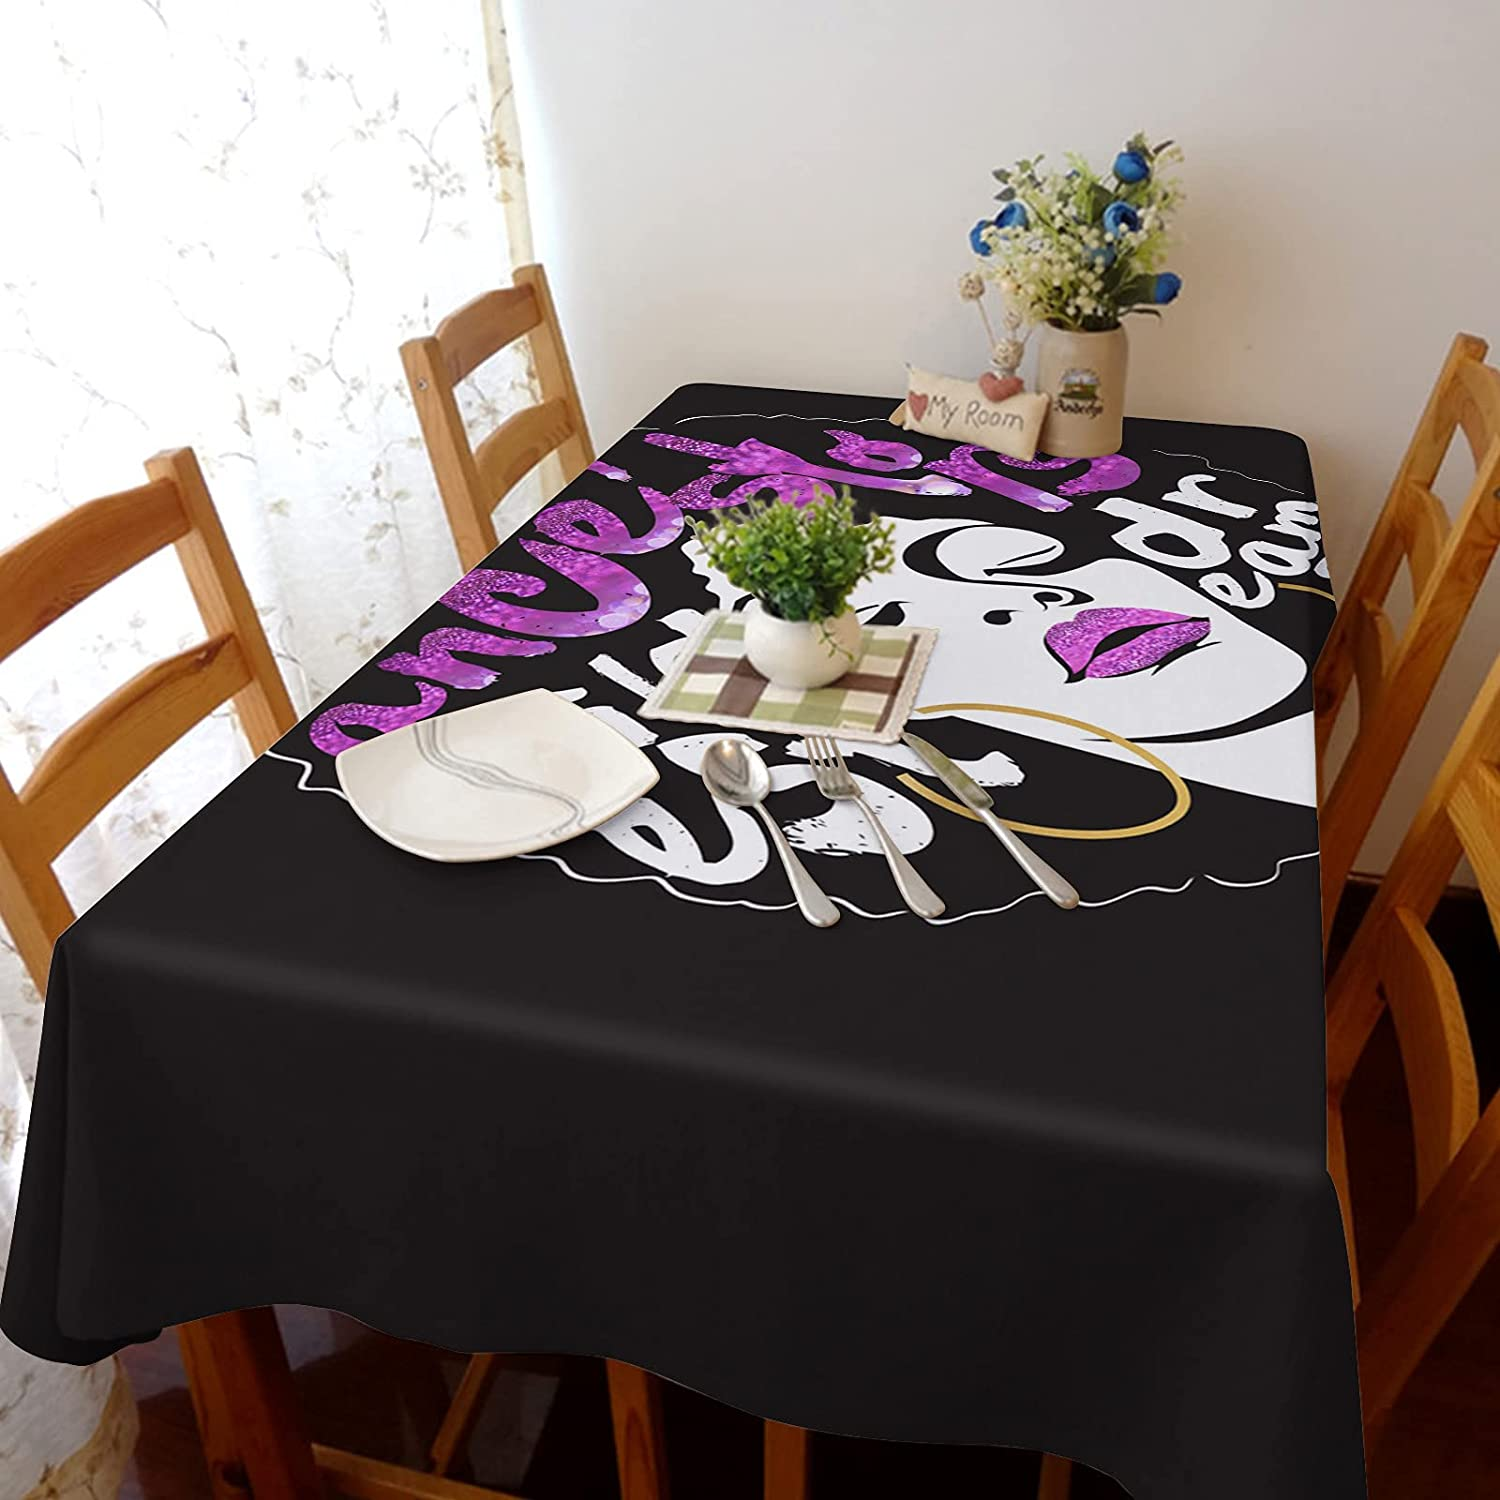 Flouky shop 54x109in Stretch Durable Dust-Pro Tablecloth Cotton Linen High quality new